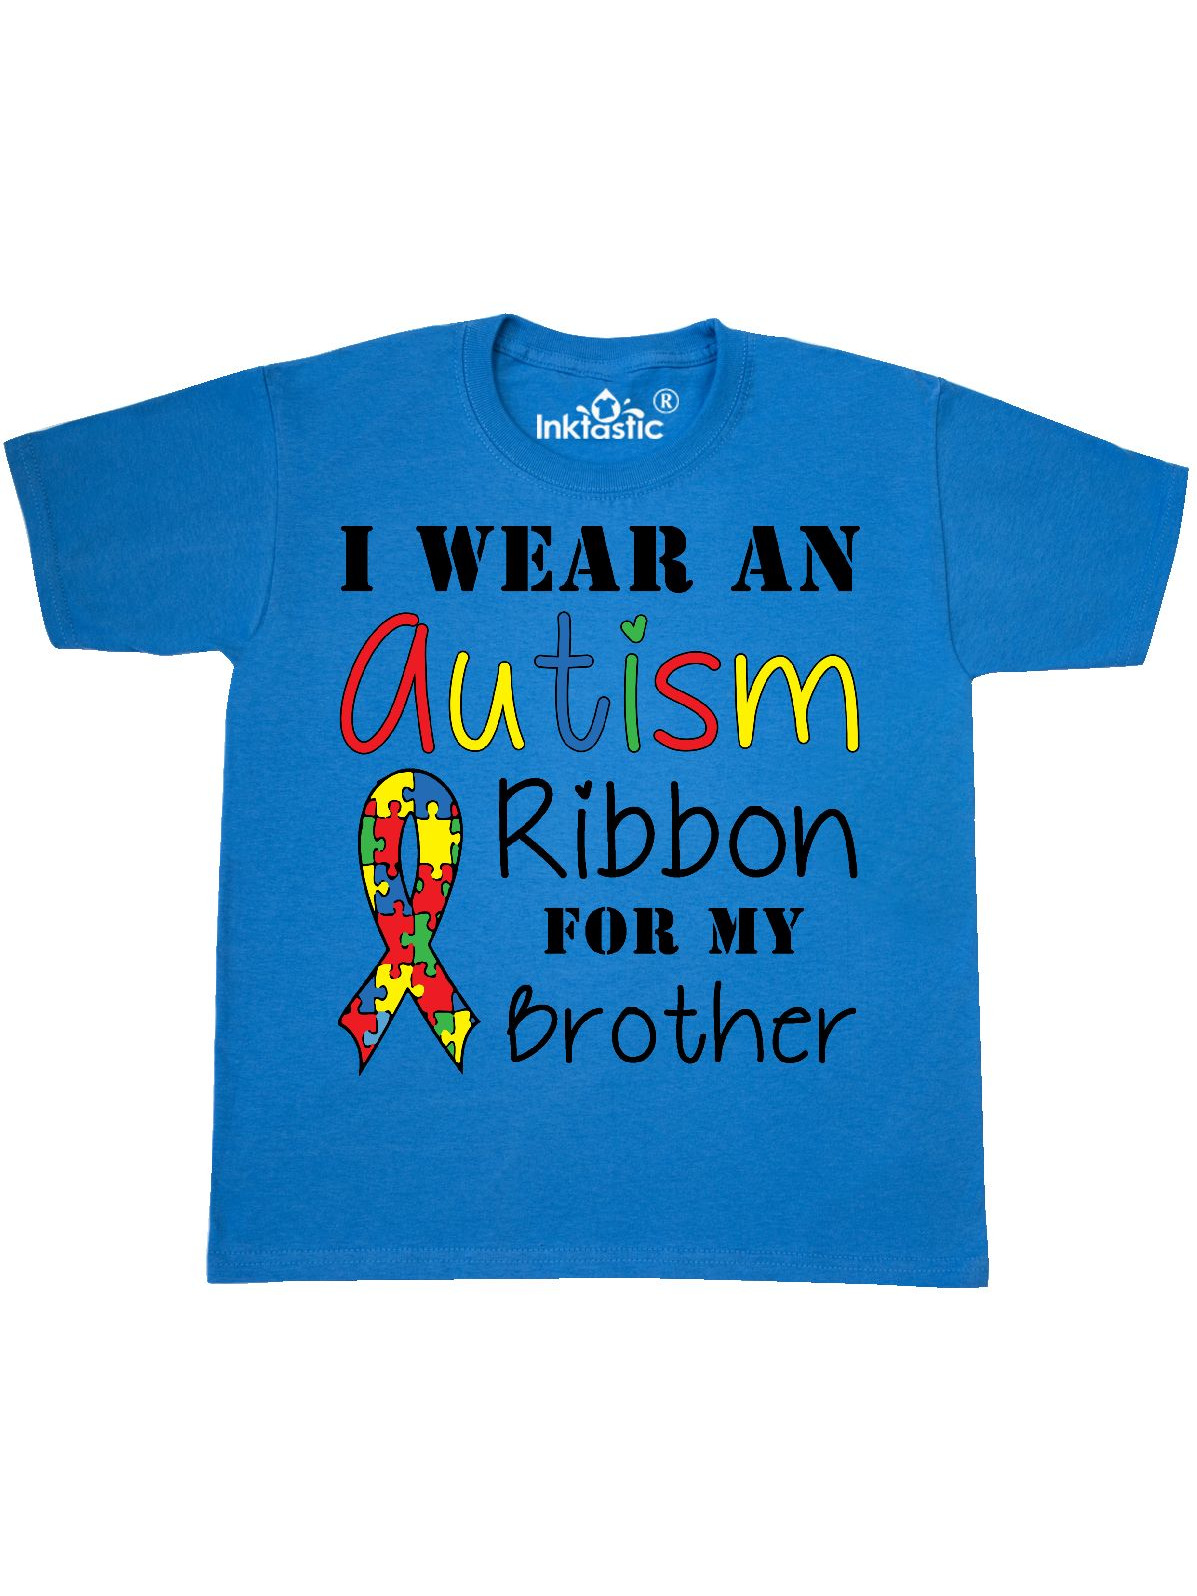 I wear an Autism ribbon for my Brother Youth T-Shirt